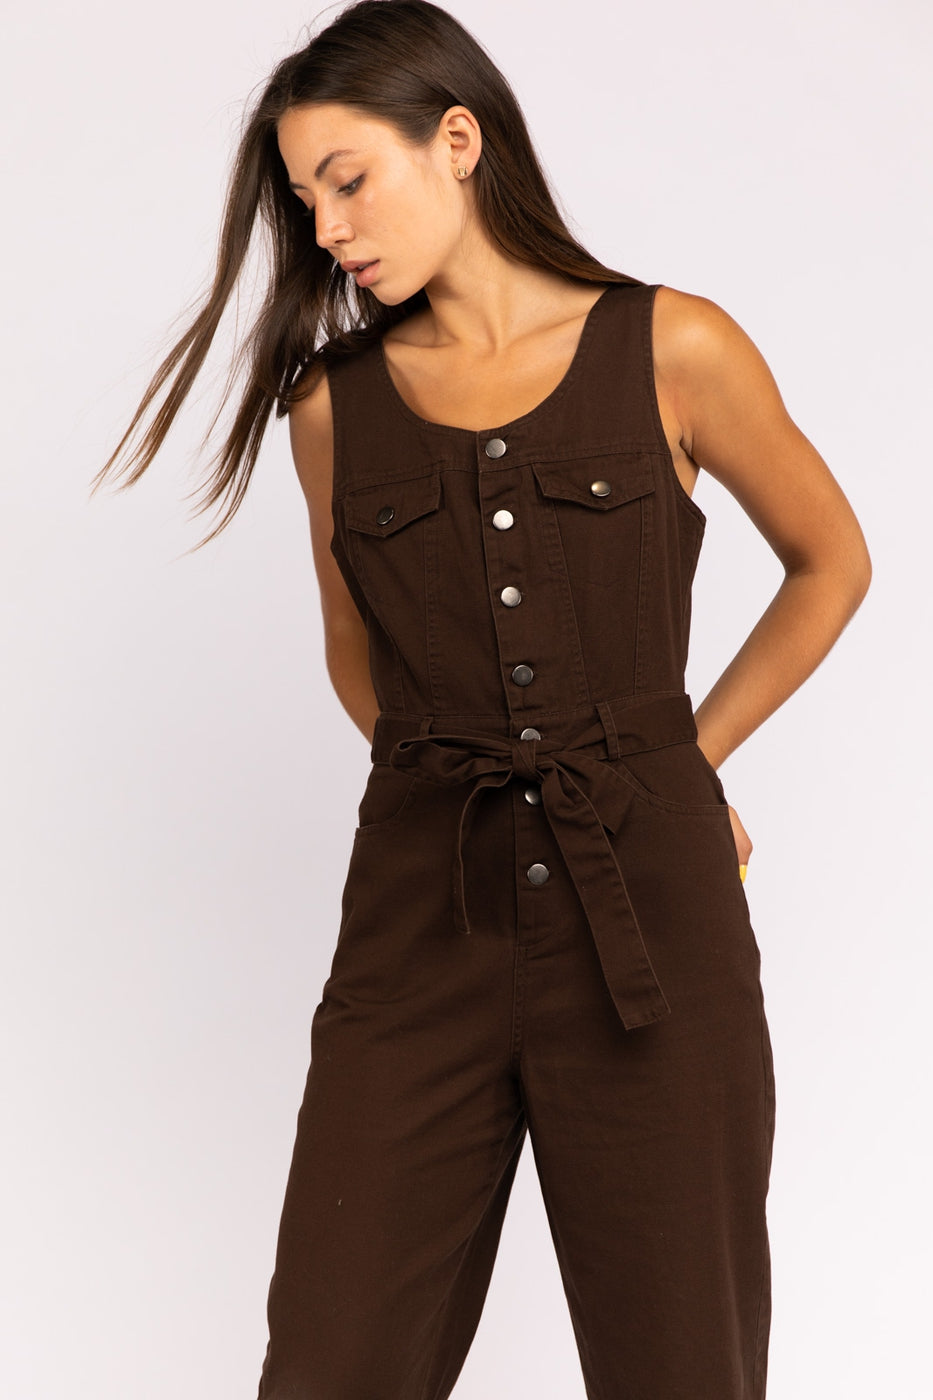 Sleeveless Utility Jumpsuit With Waist Tie In Dark Brown Siin Bees